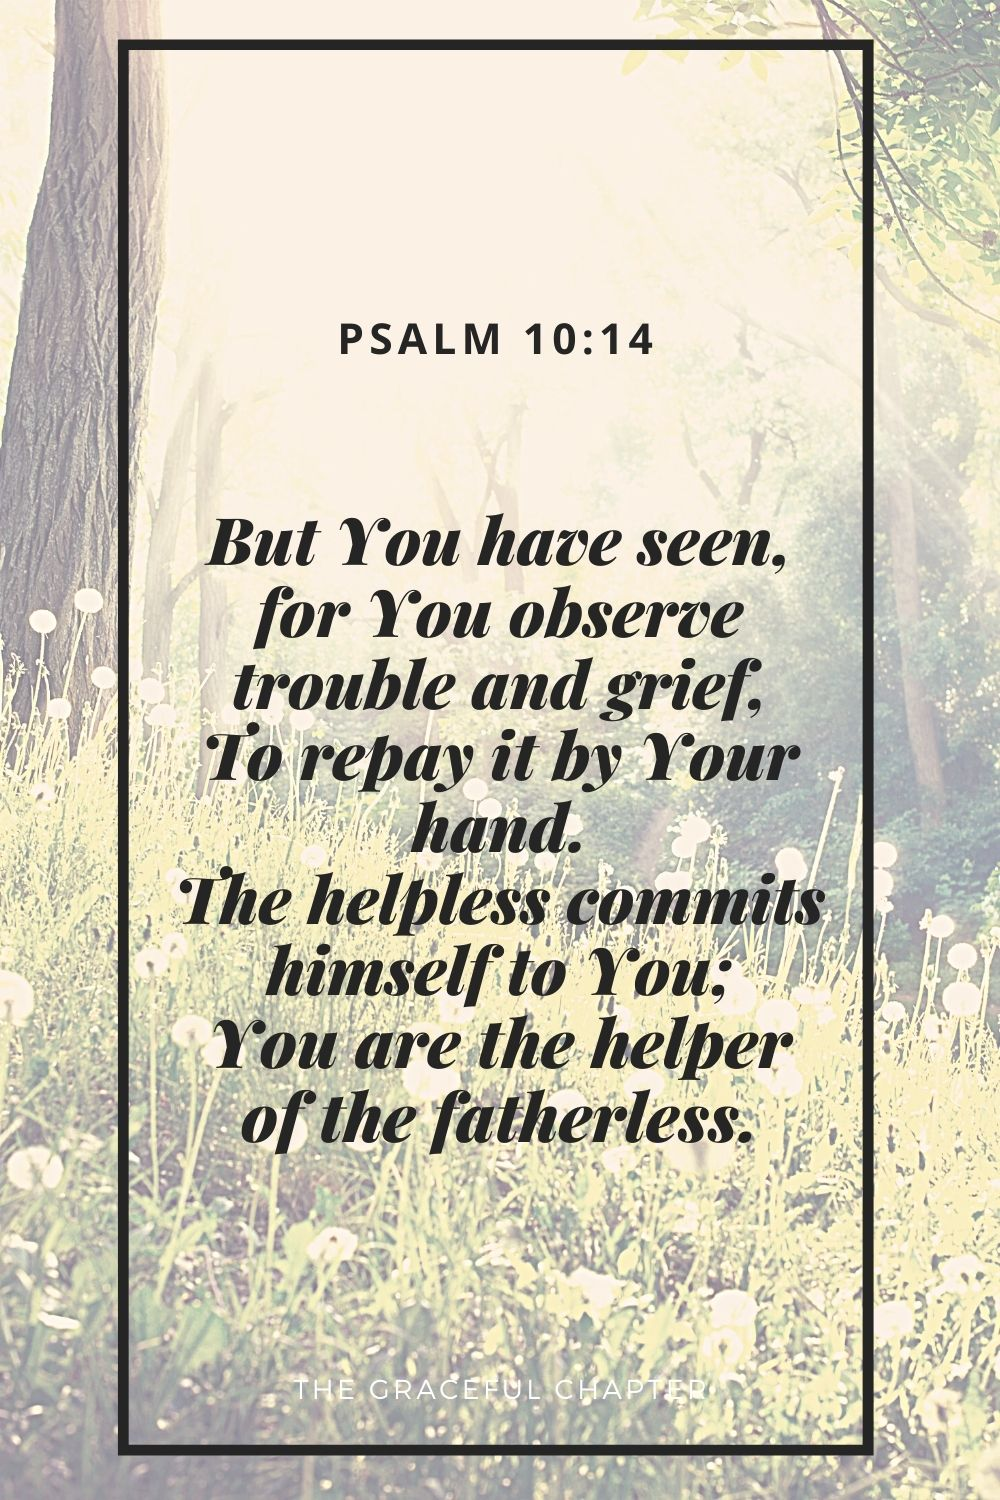 But You have seen, for You observe trouble and grief, To repay it by Your hand. The helpless commits himself to You; You are the helper of the fatherless. Psalm 10:14